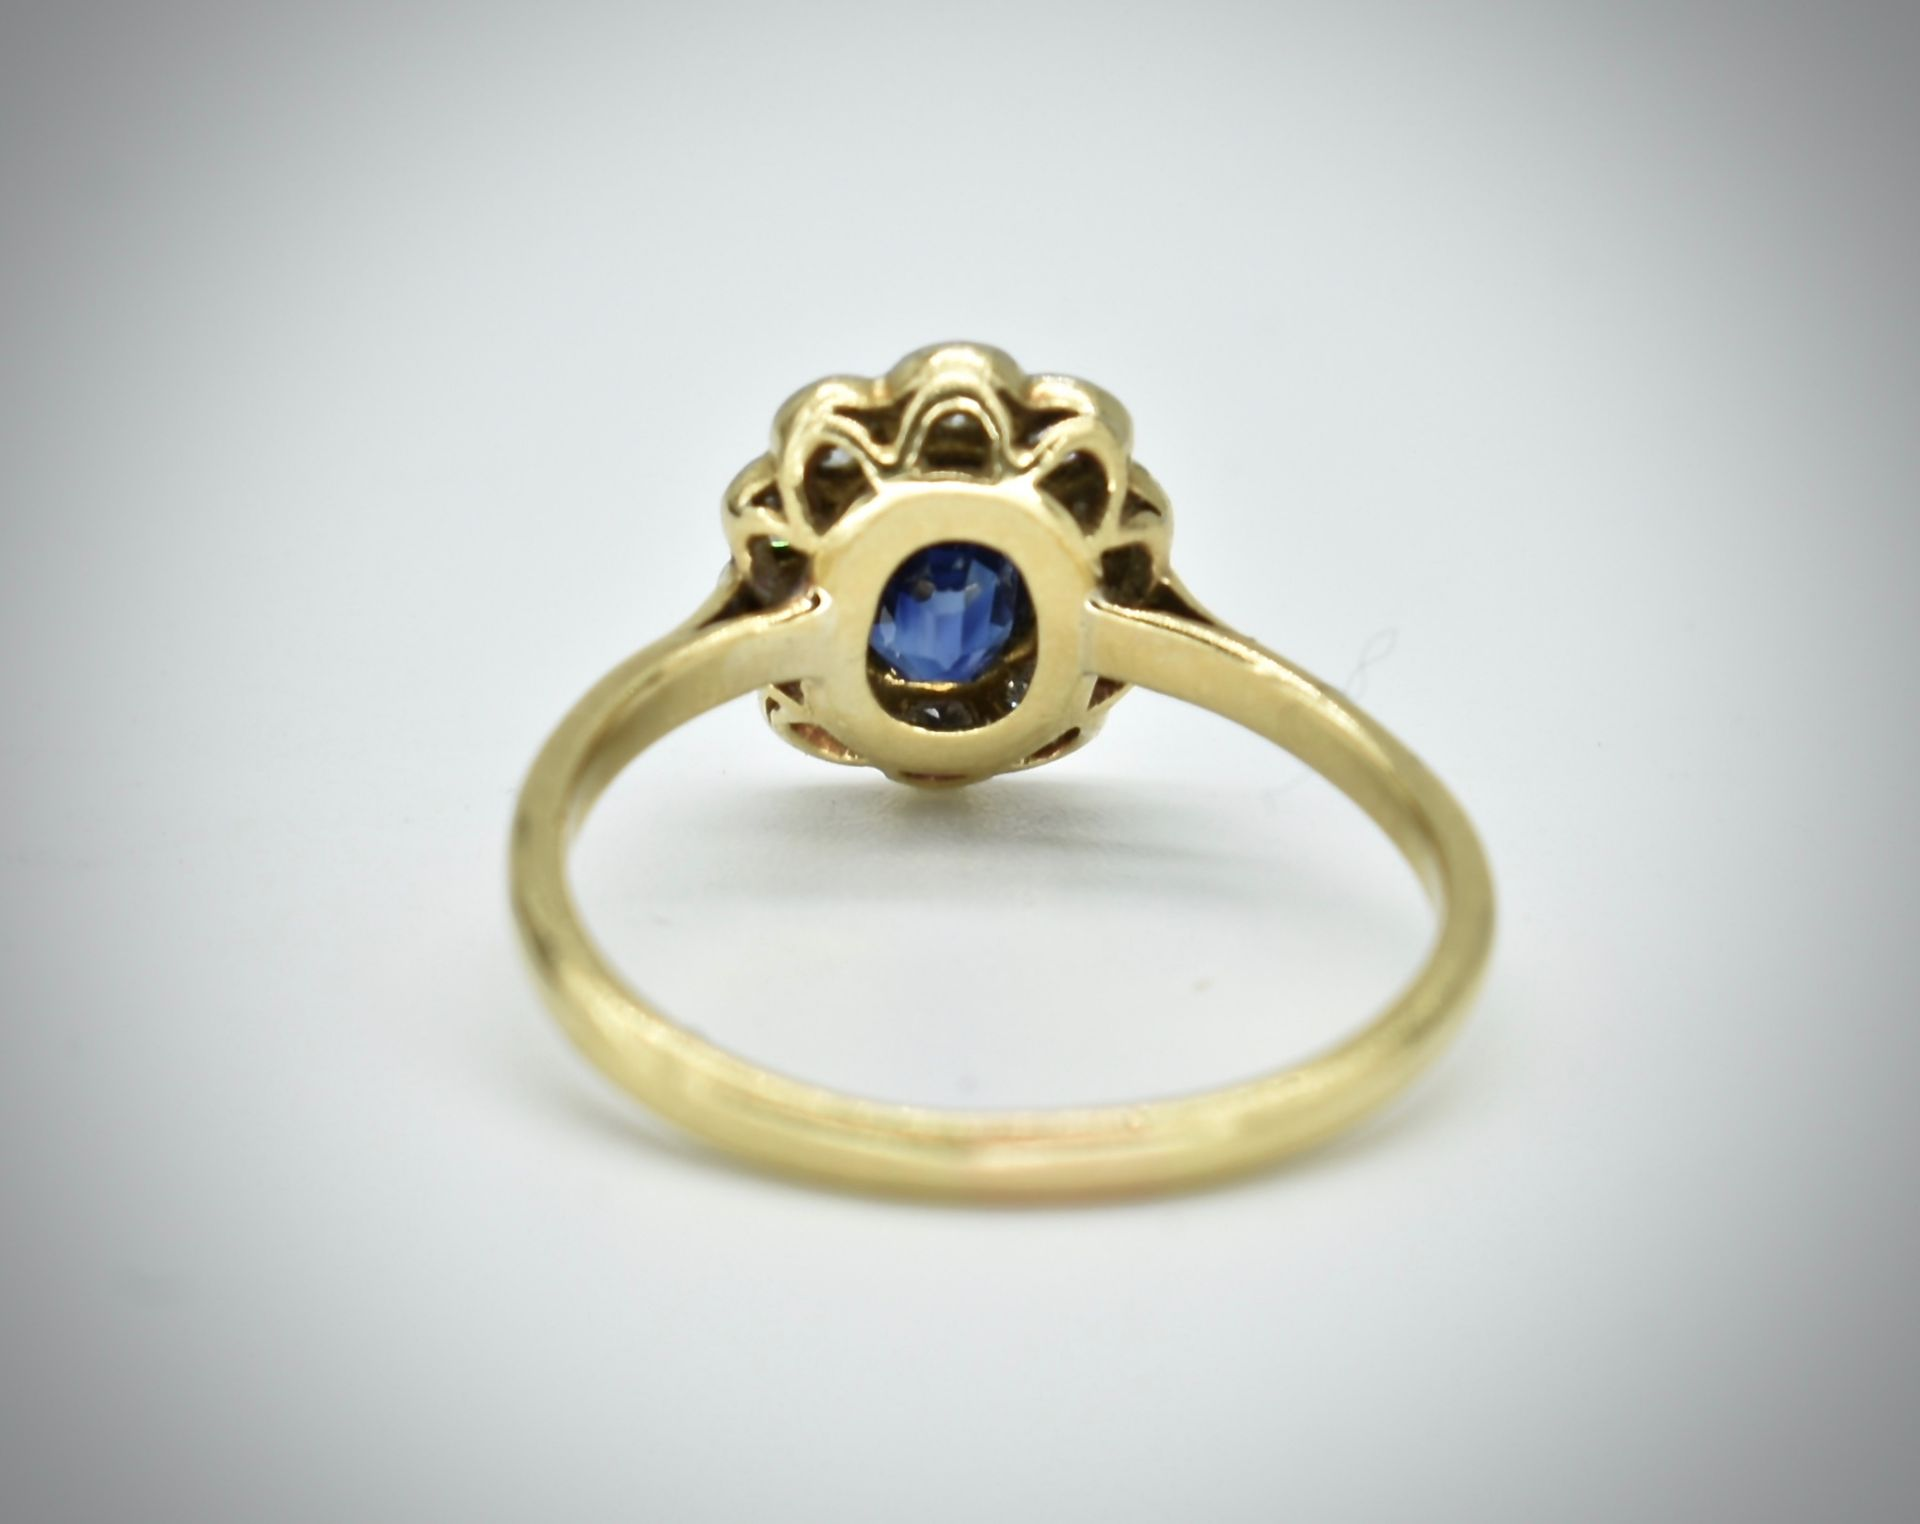 18ct Gold Sapphire & Diamond Cluster Ring - Image 6 of 6